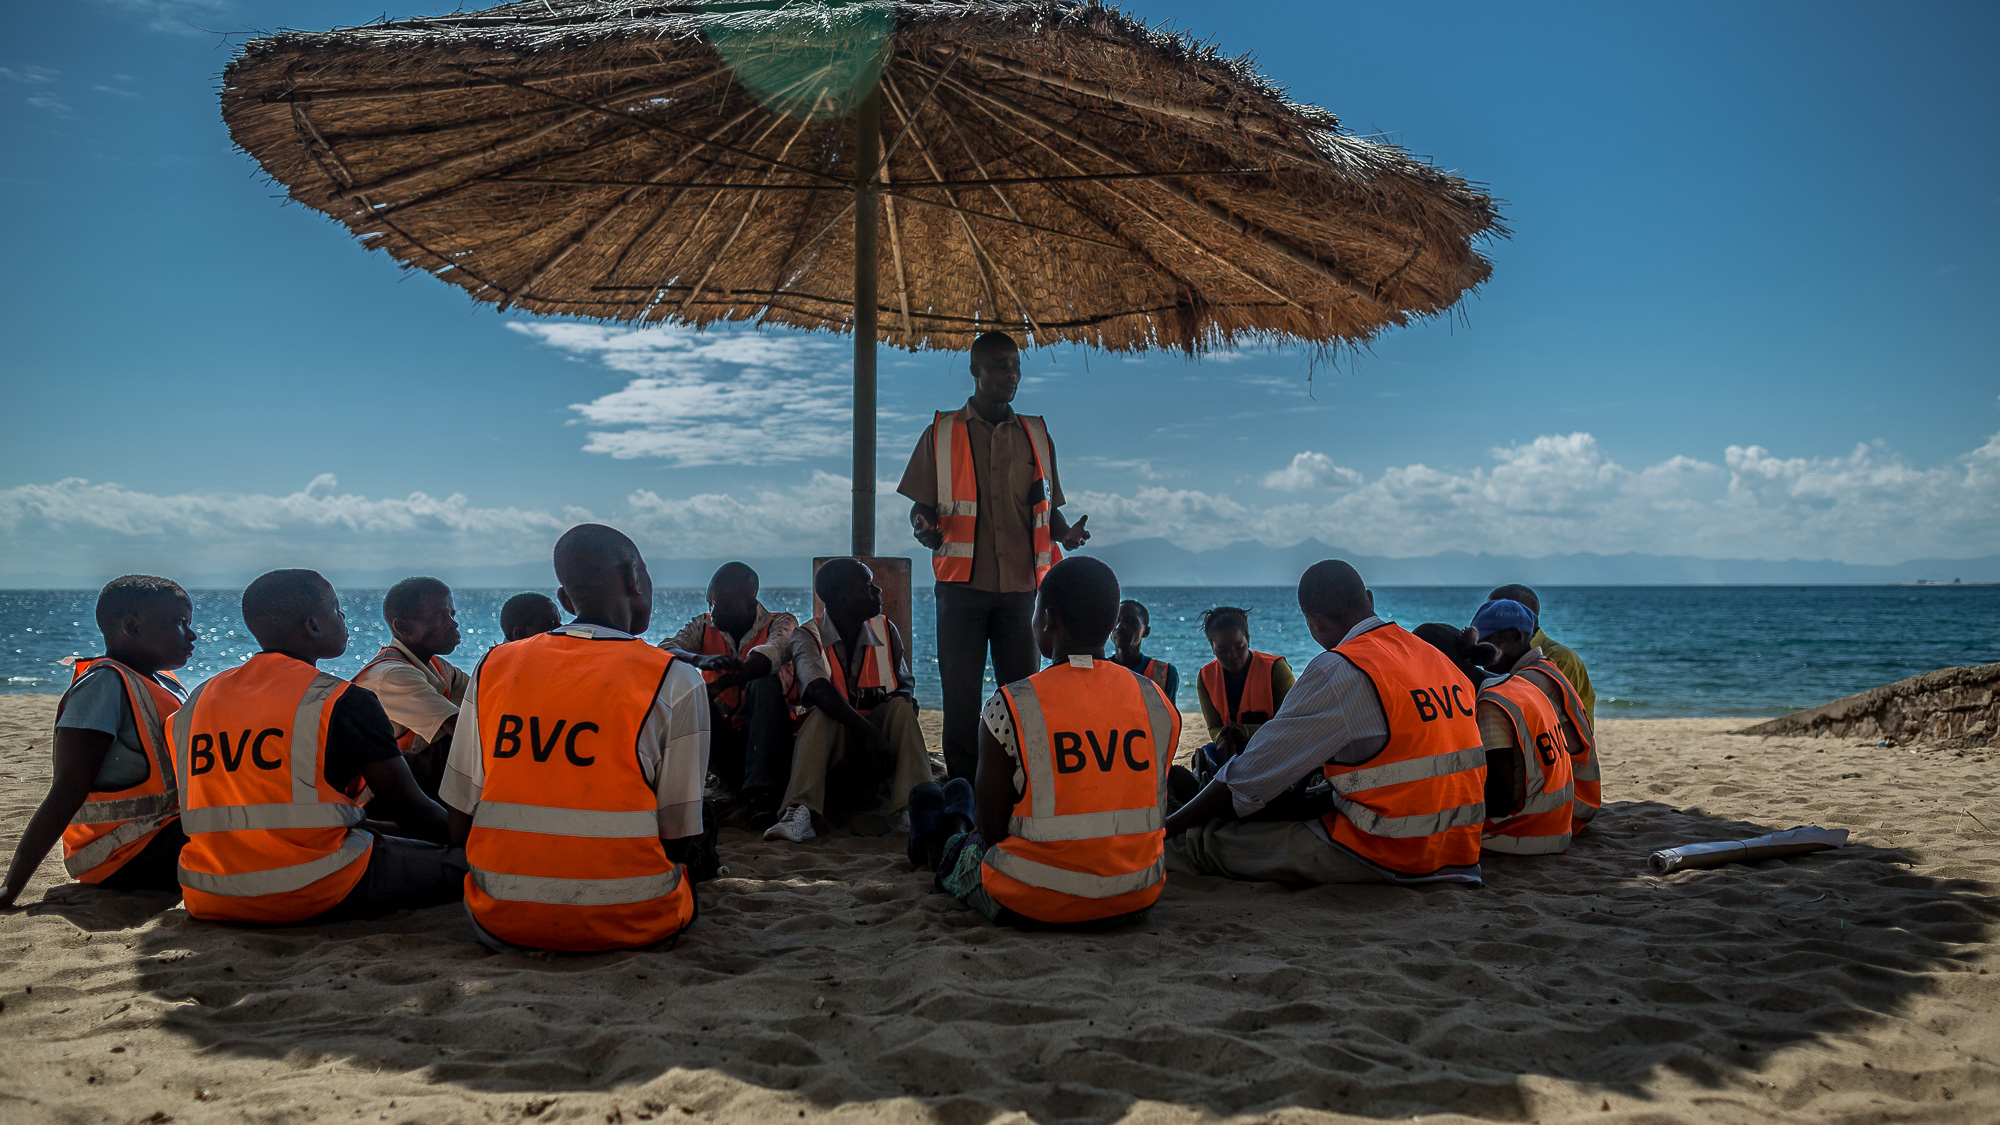 BVC members come together every week to have a meeting and discu